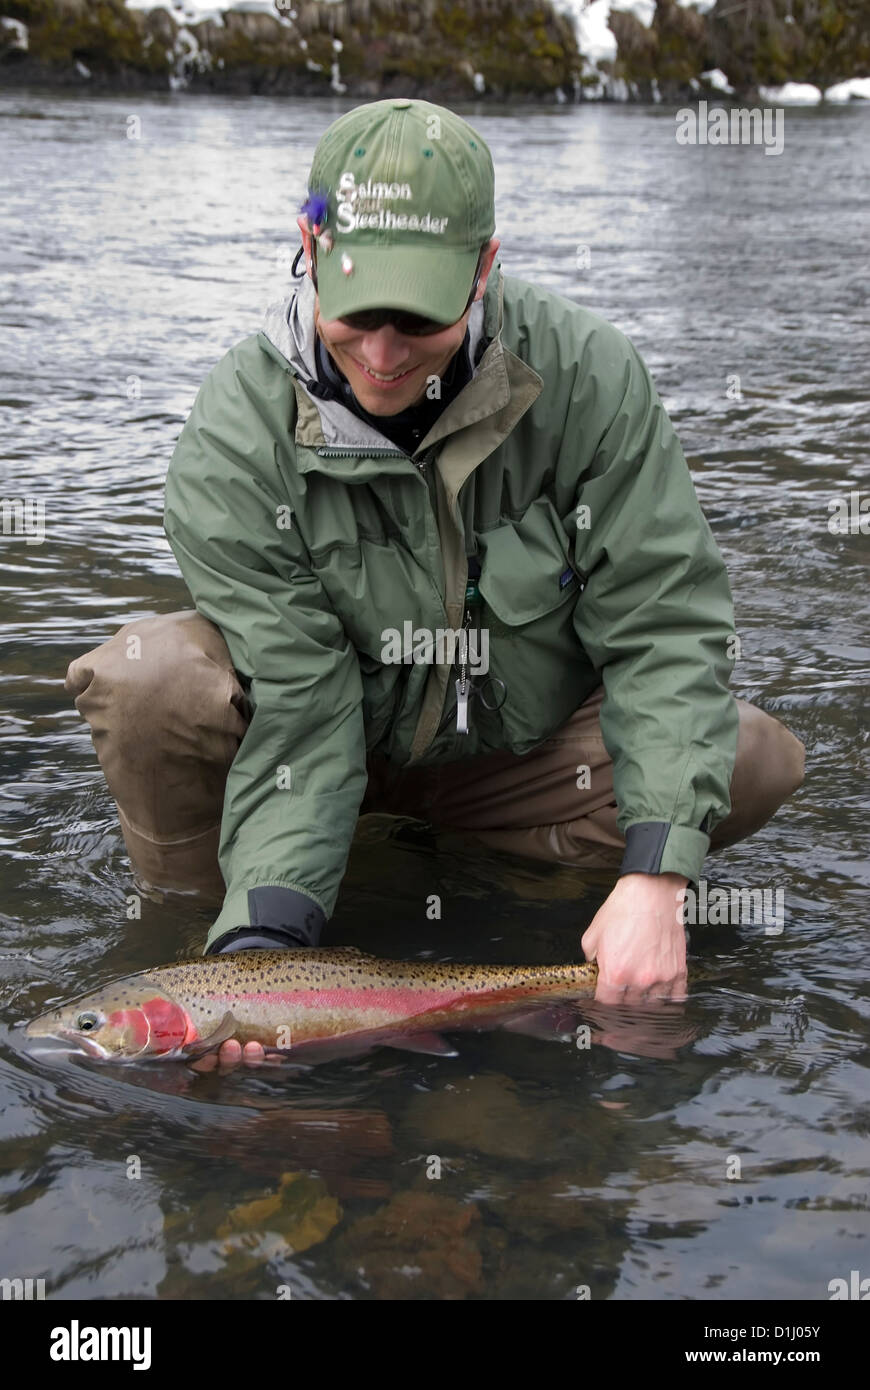 Successful fisherman with a steelhead trout, Grande Ronde River, Oregon. - Stock Image